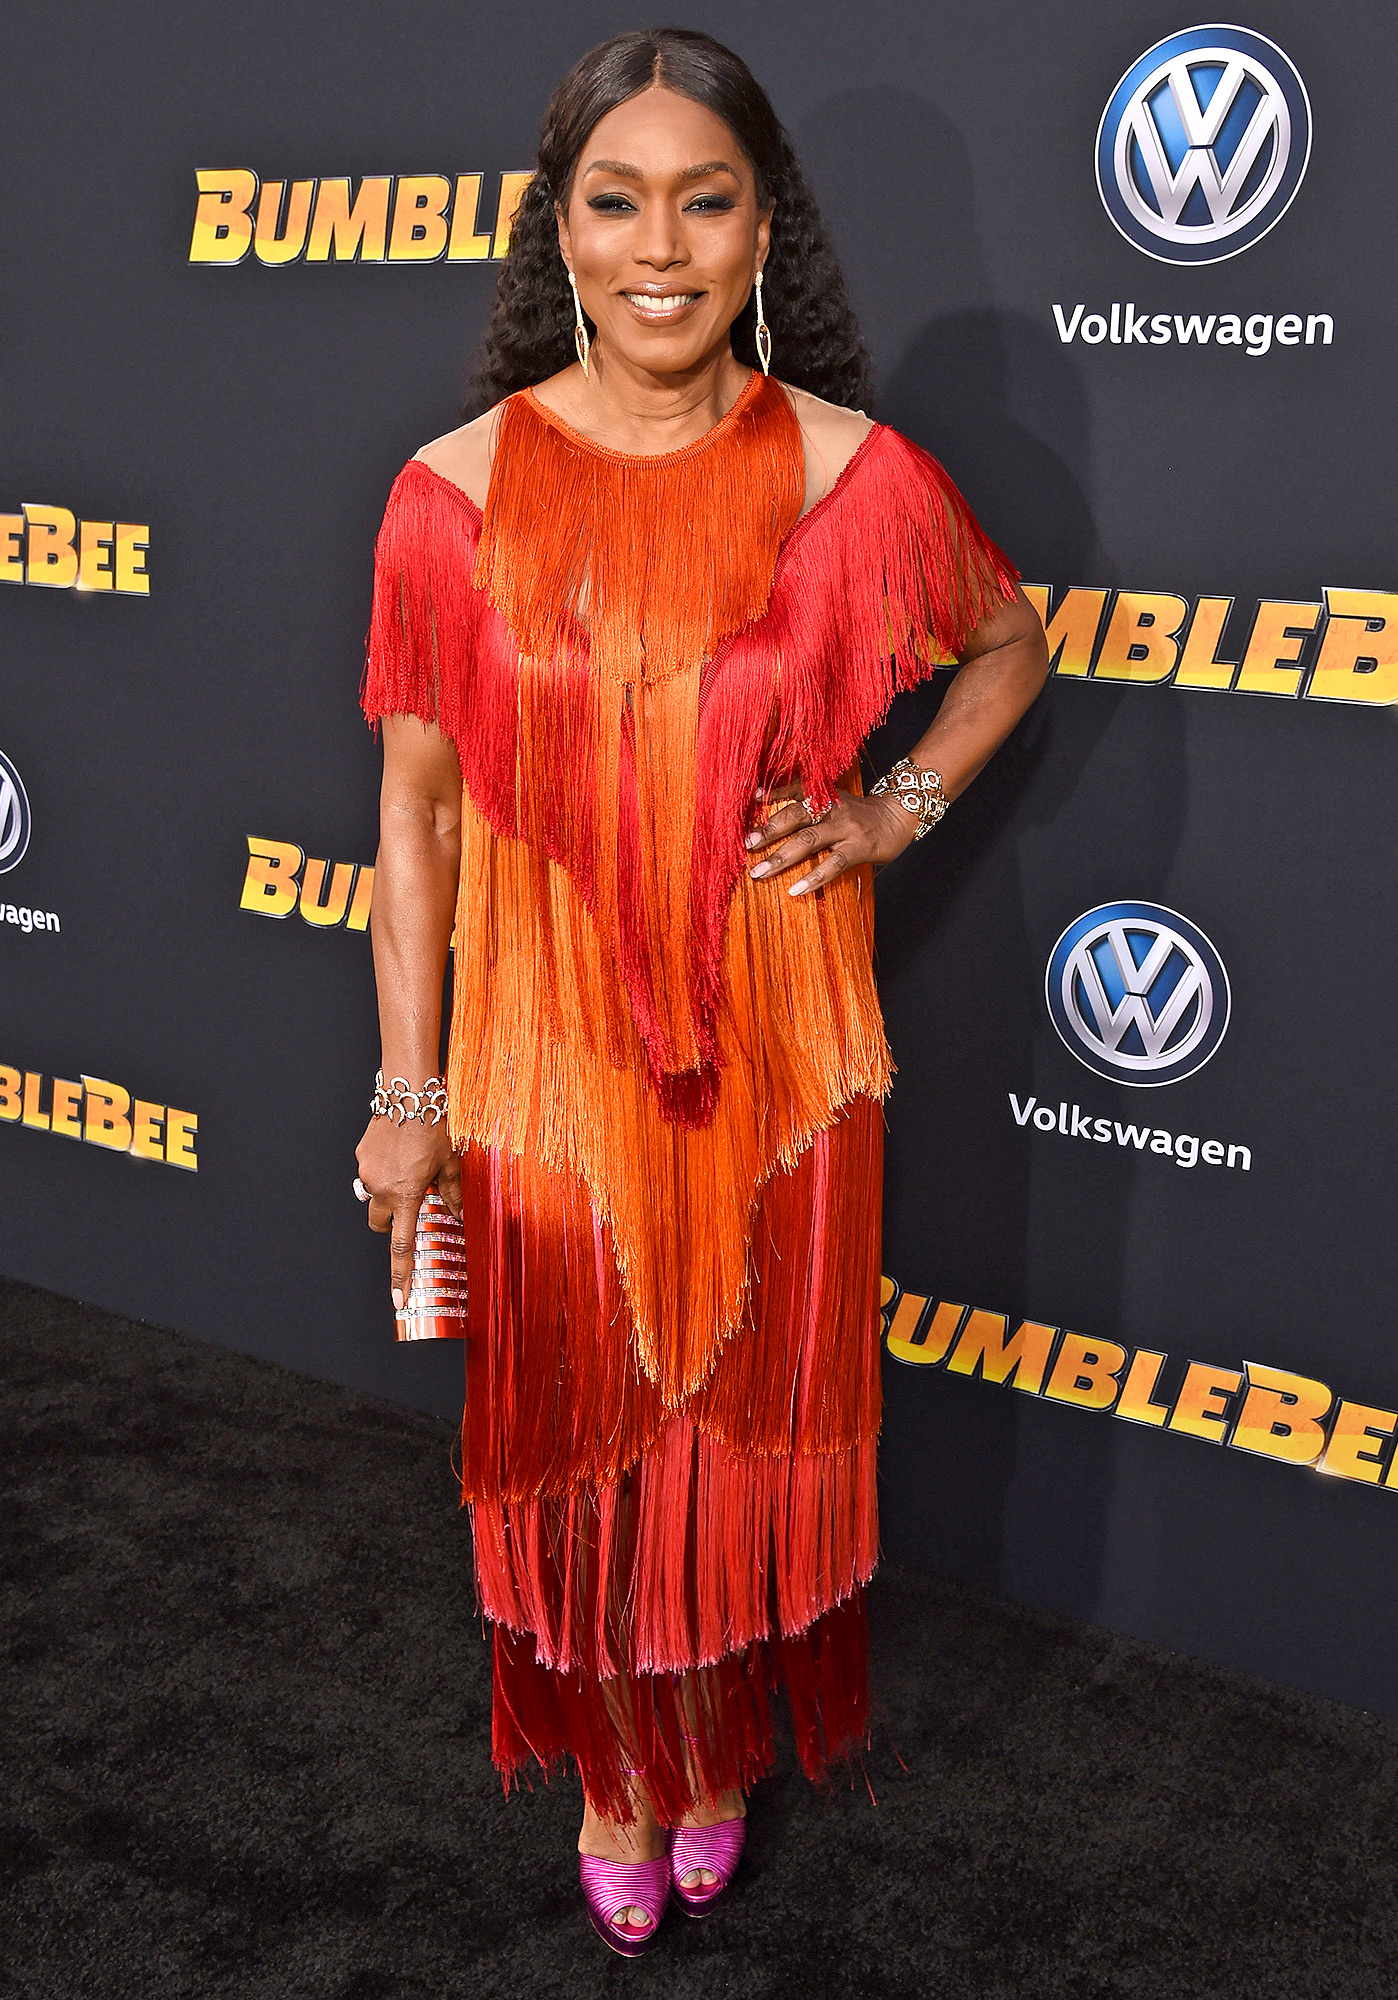 Paramount Pictures Presents The Global Premiere of 'Bumblebee'